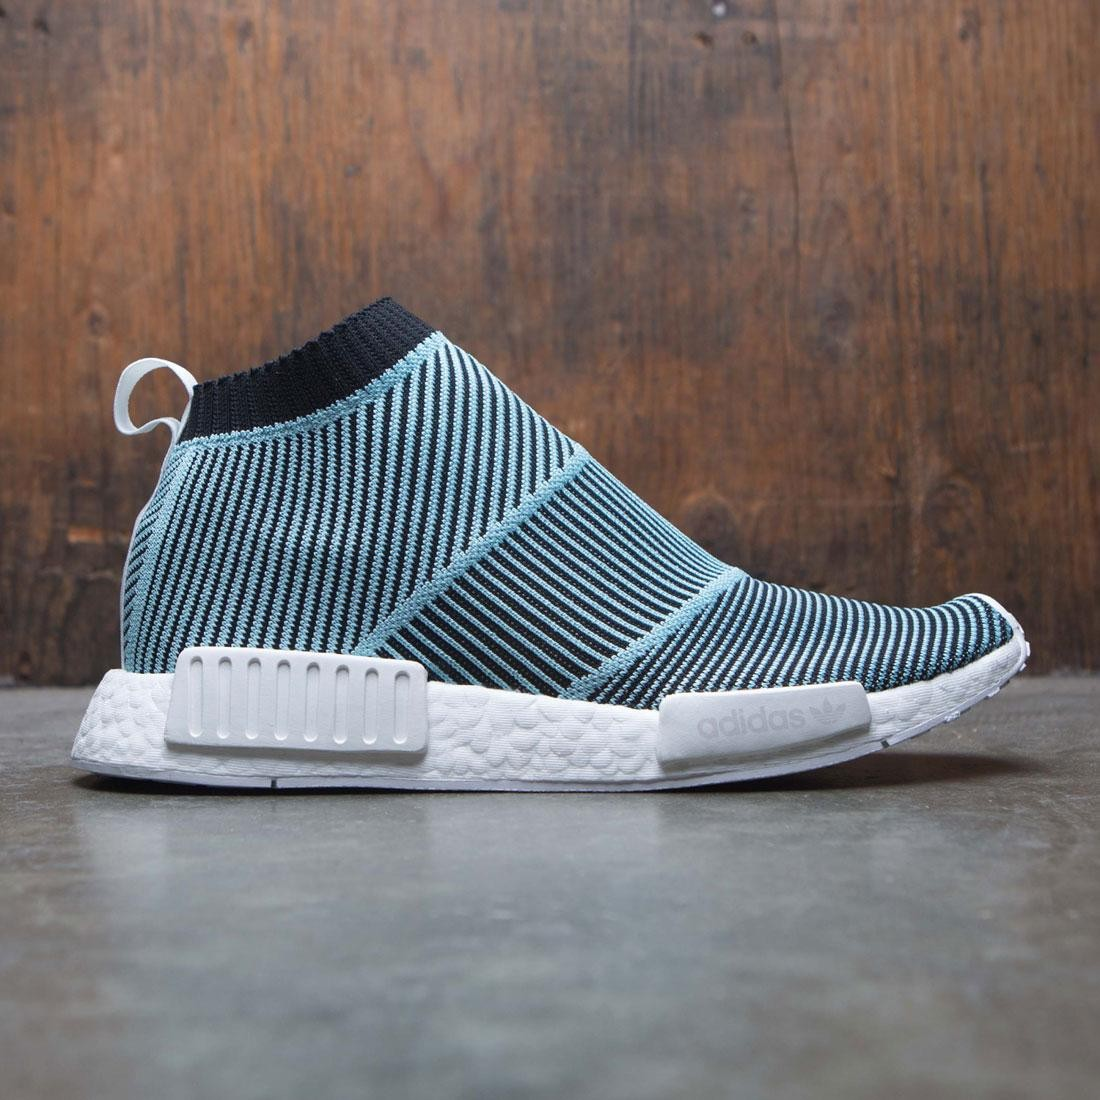 5c5ad8e3d Adidas Men NMD CS1 Parley Primeknit black core black blue spirit